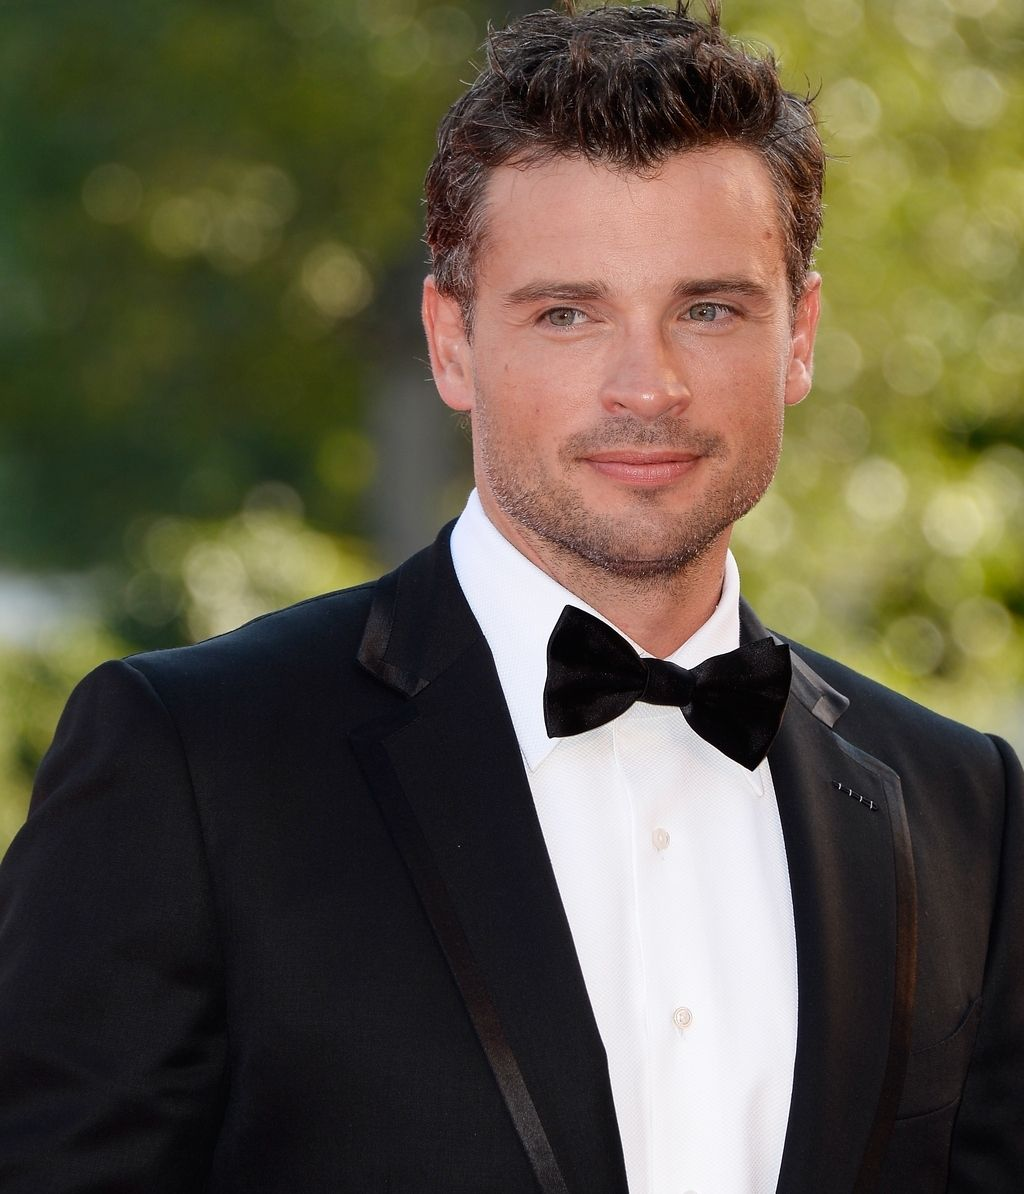 tom welling wedding pictures - HD 1024×1194